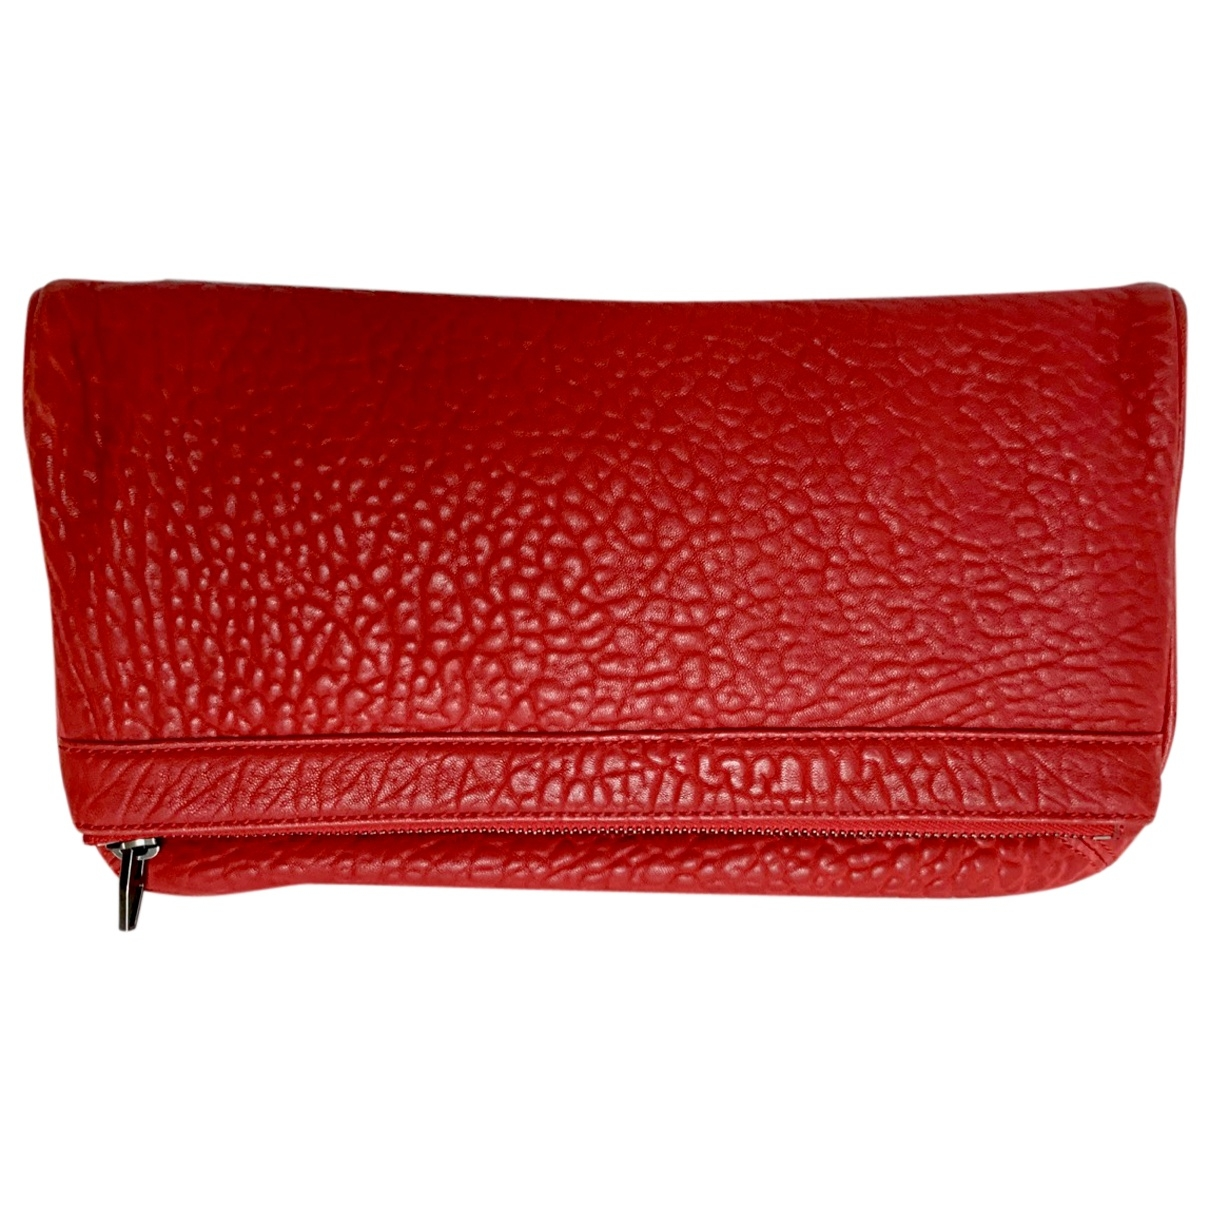 Alexander Wang \N Red Leather Clutch bag for Women \N